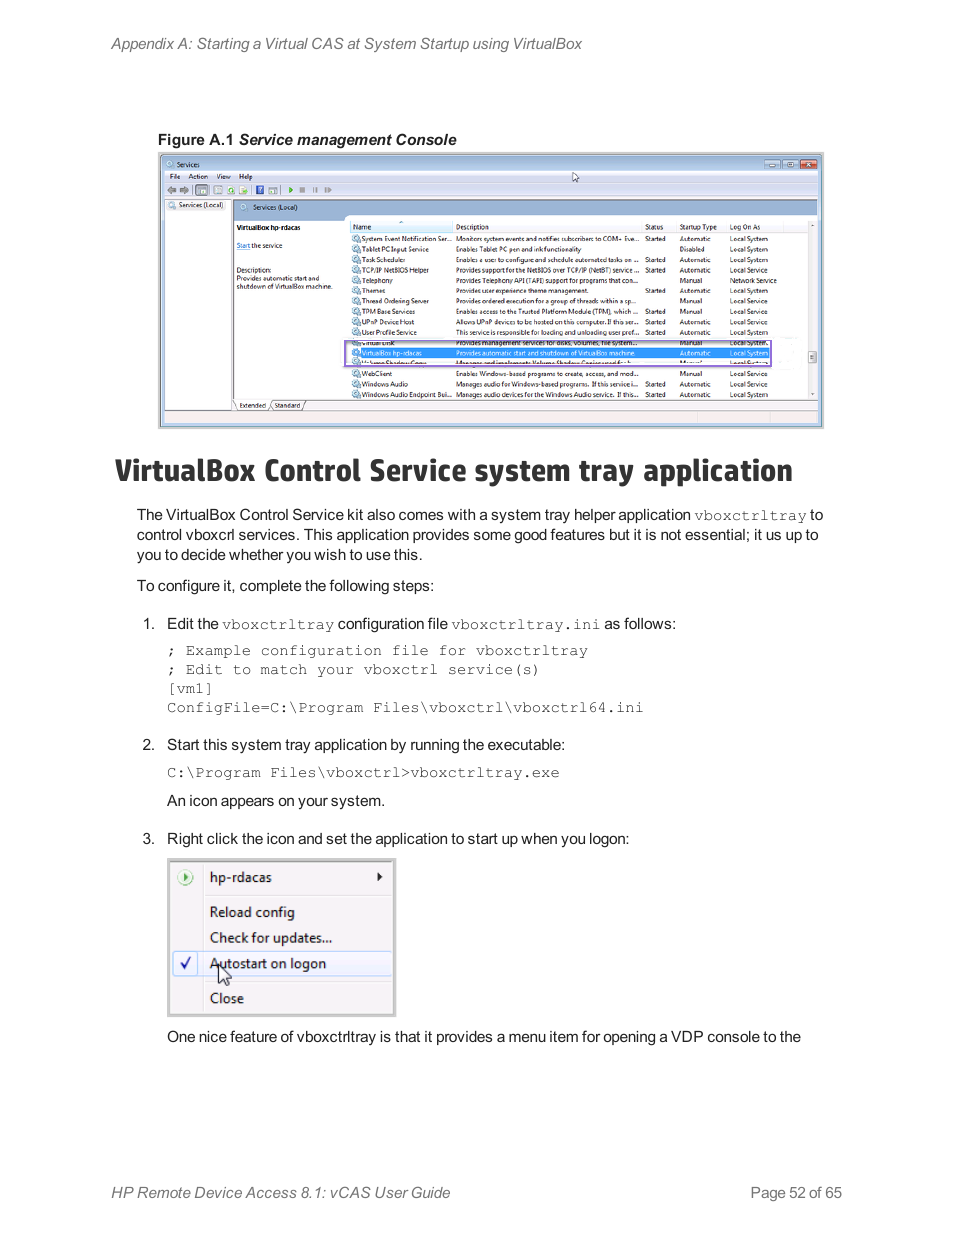 Virtualbox control service system tray application | HP Remote